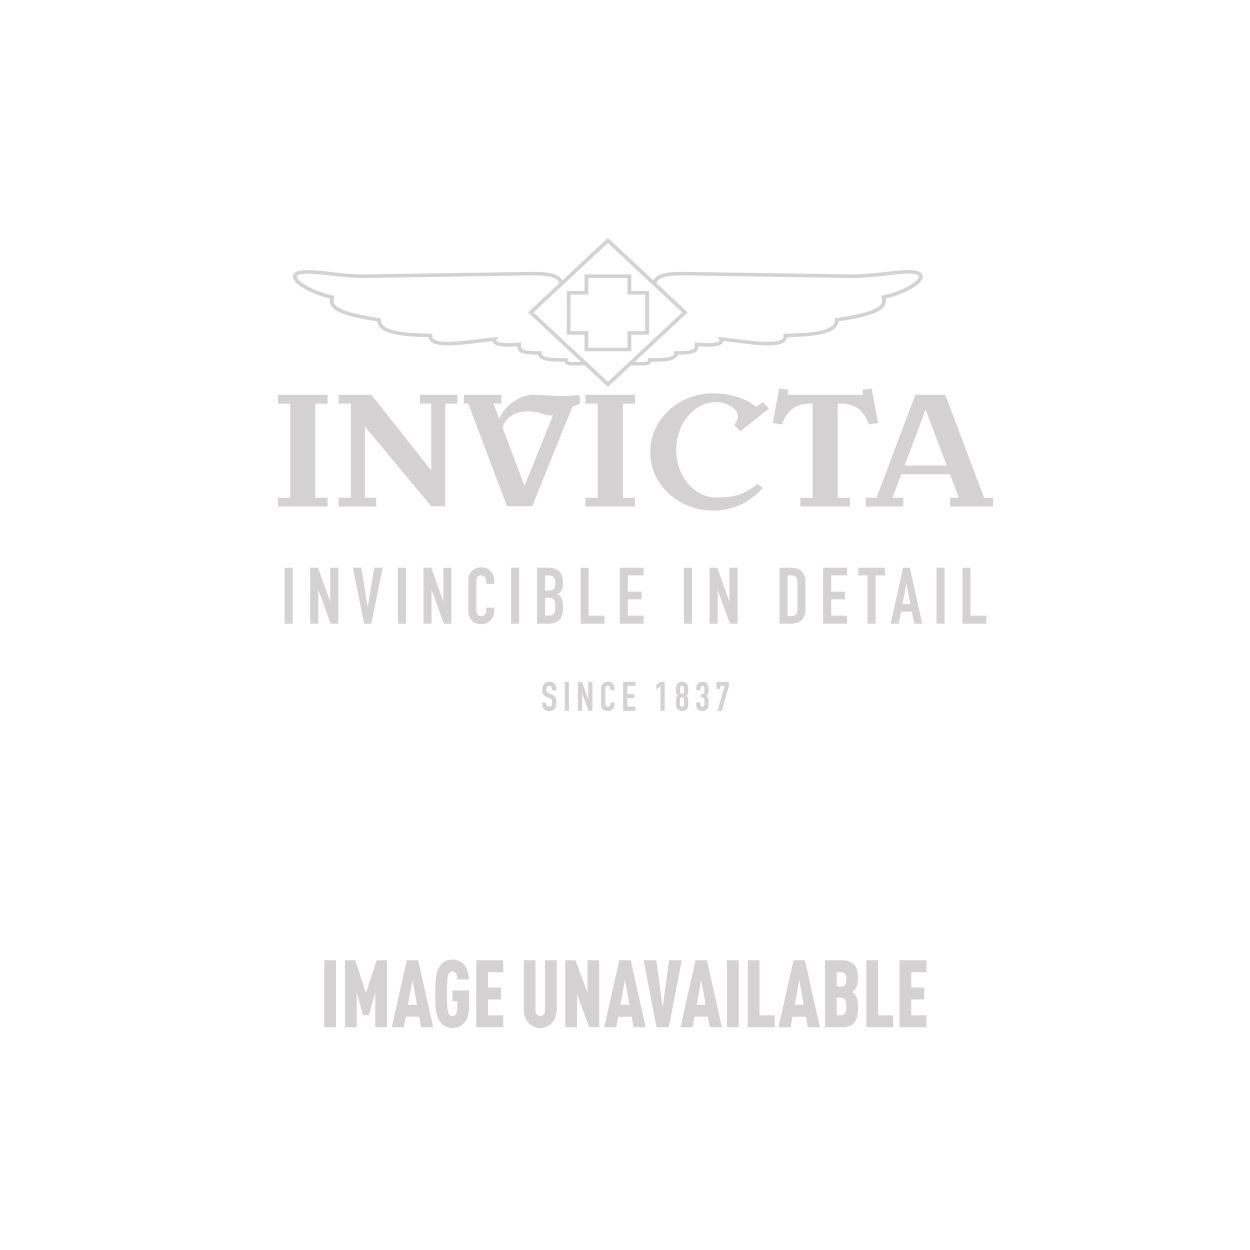 Invicta Excursion Swiss Made Quartz Watch - Gold, Stainless Steel case Stainless Steel band - Model 14040